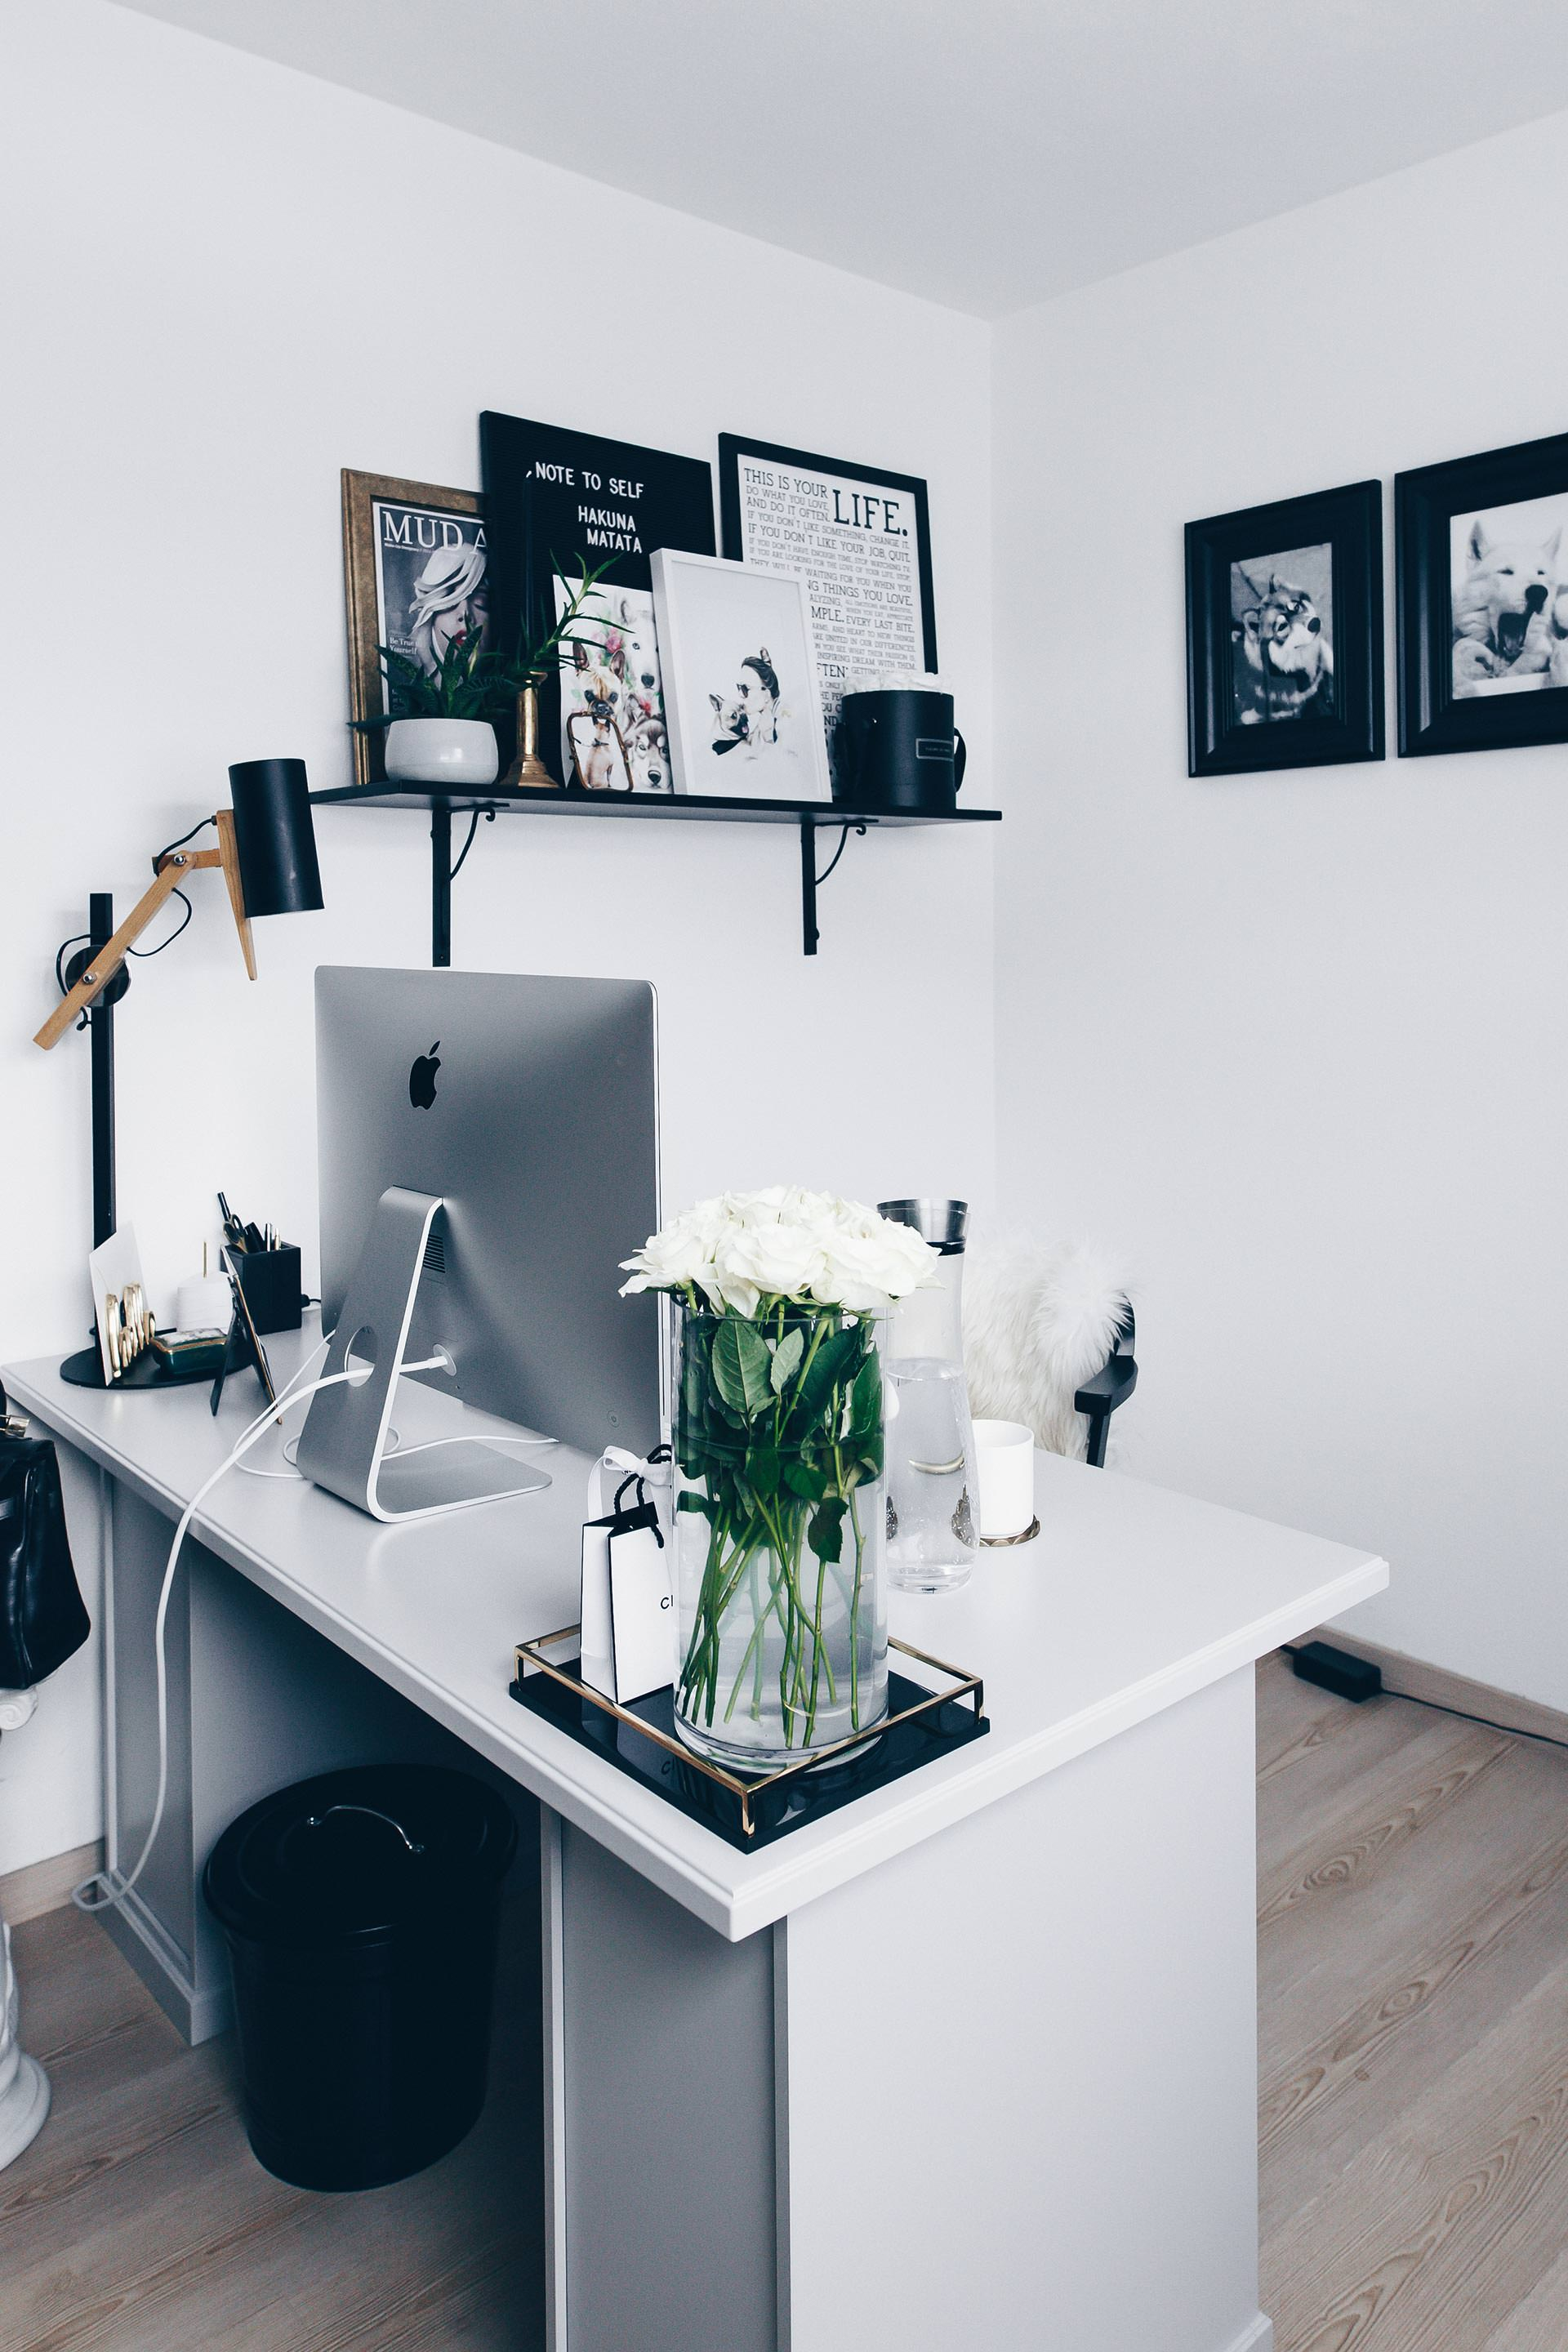 arbeitsplatz zuhause einrichten 5 ideen f r mehr stil im blogger home office. Black Bedroom Furniture Sets. Home Design Ideas